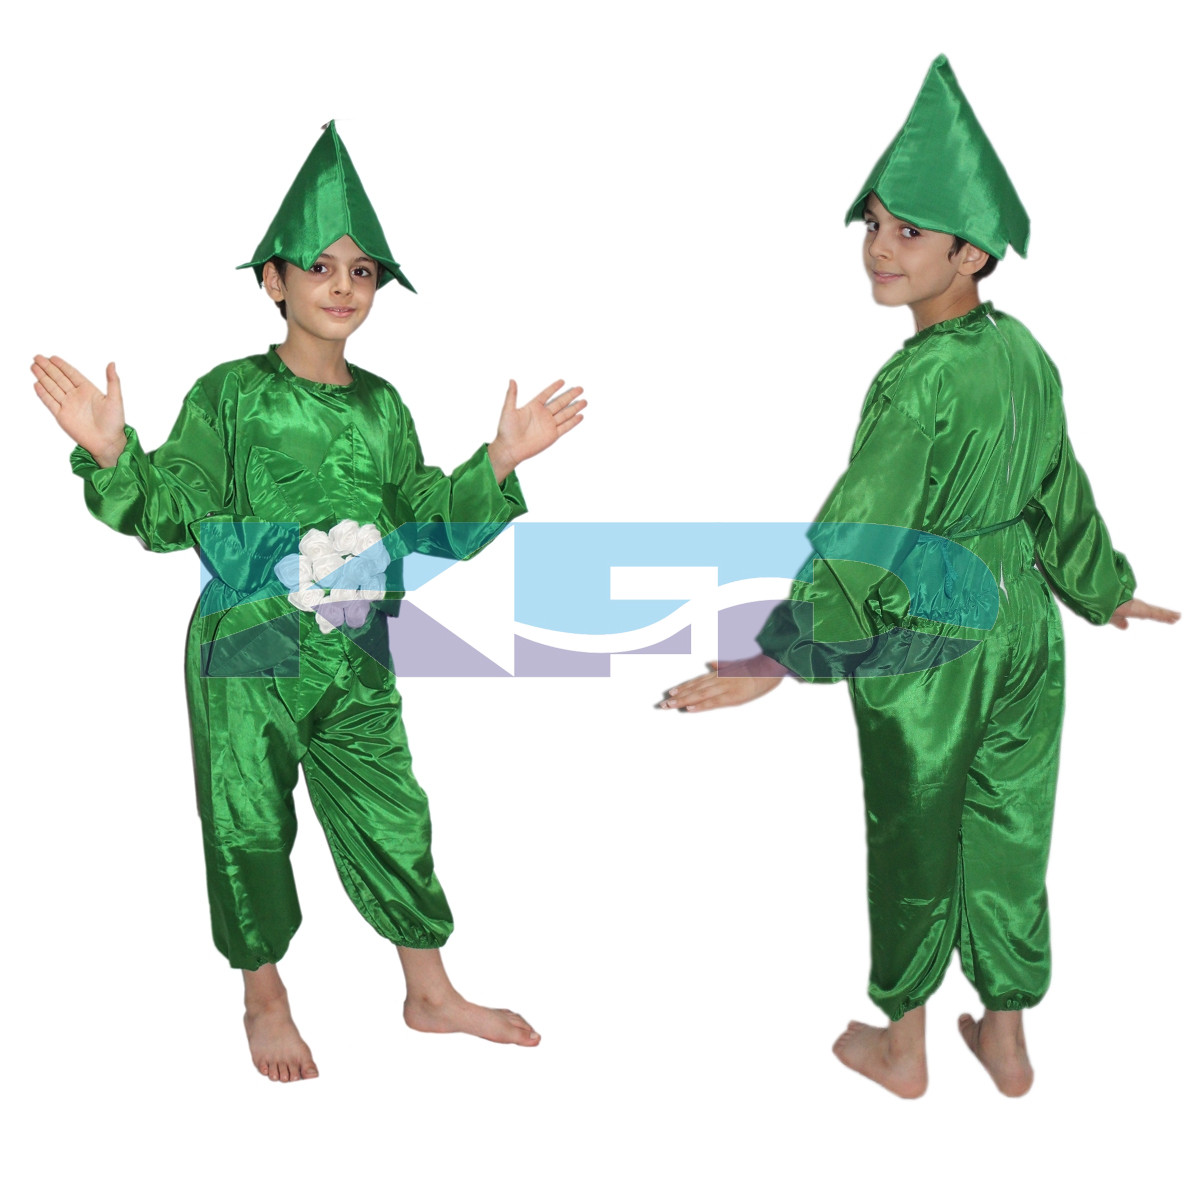 Cauliflower fancy dress for kids,Vegetables Costume for School Annual function/Theme Party/Competition/Stage Shows Dress